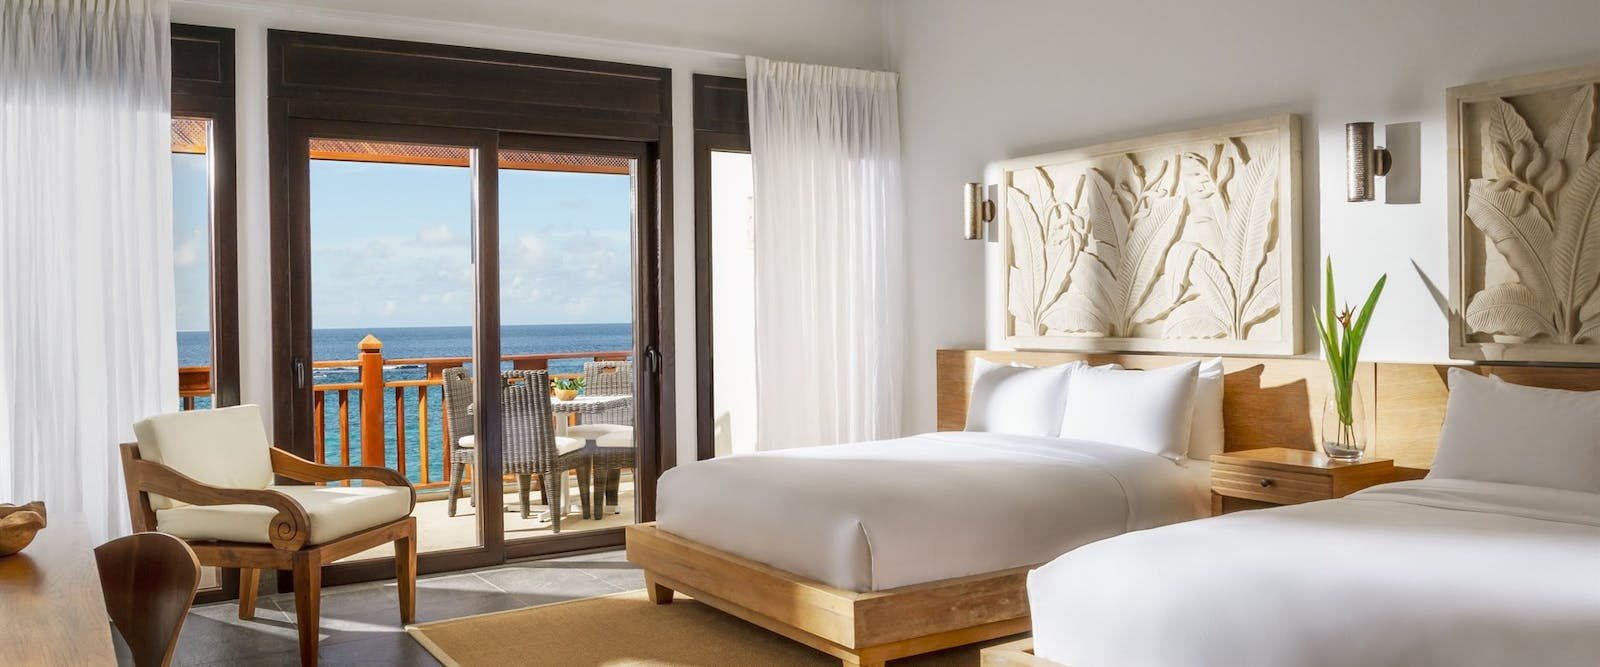 Premium Double Bedroom with Ocean Ciew at Zemi Beach House, Anguilla